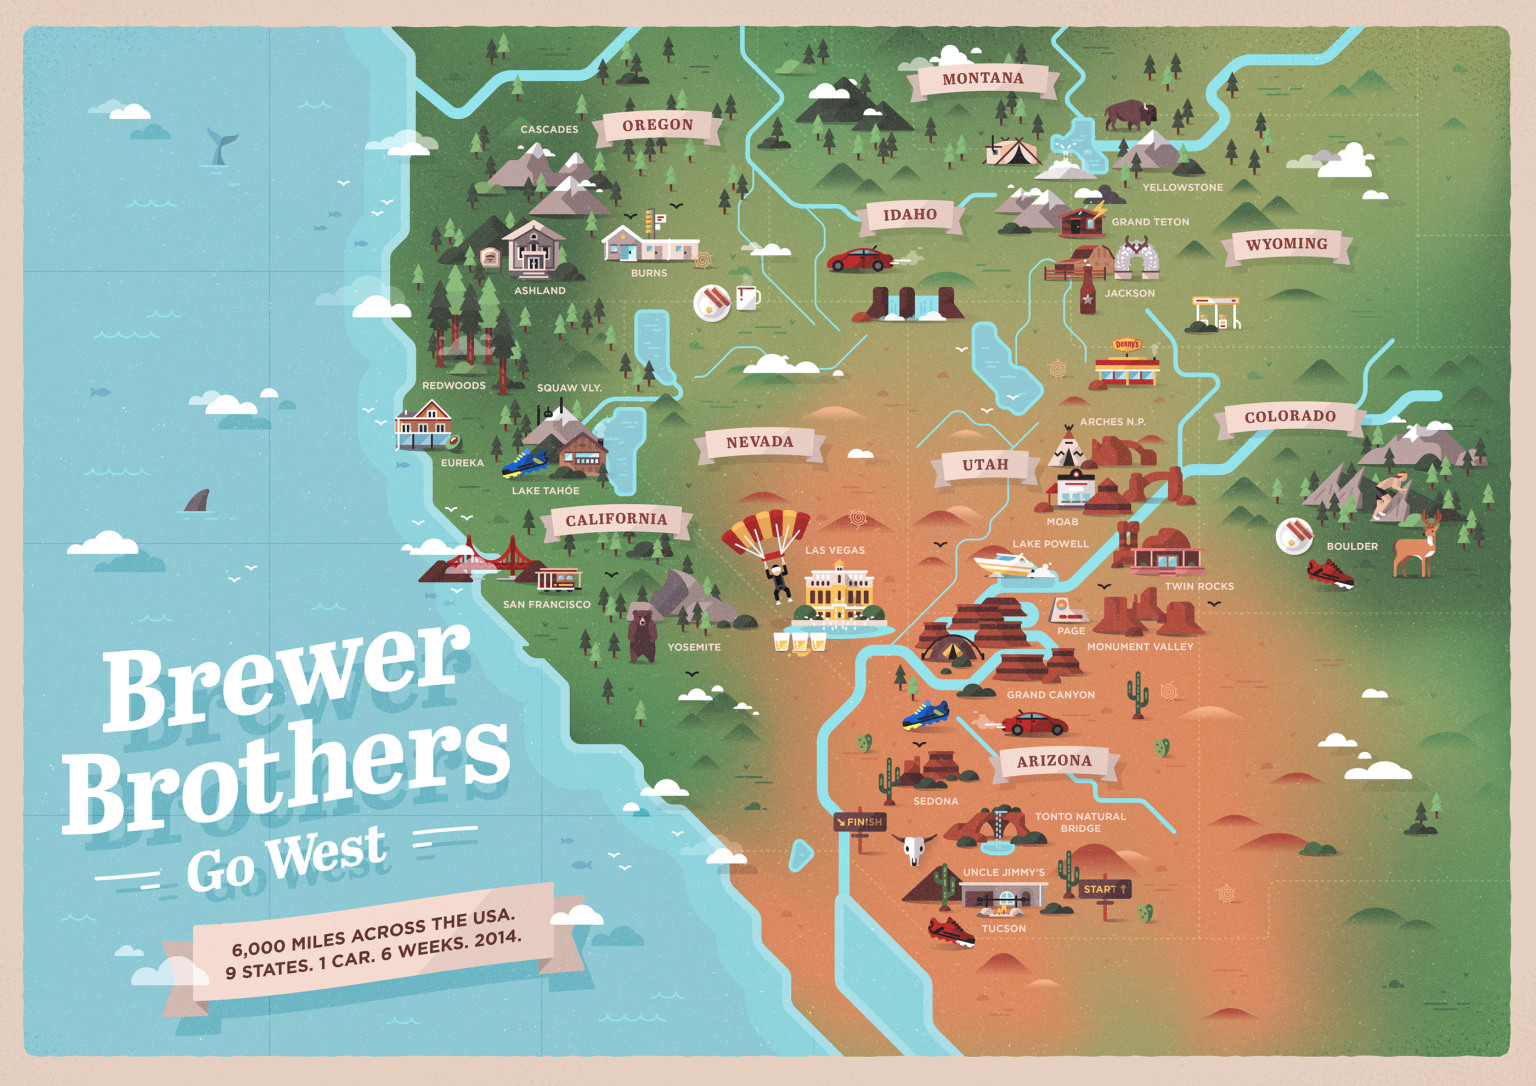 Brewer Brothers Go West